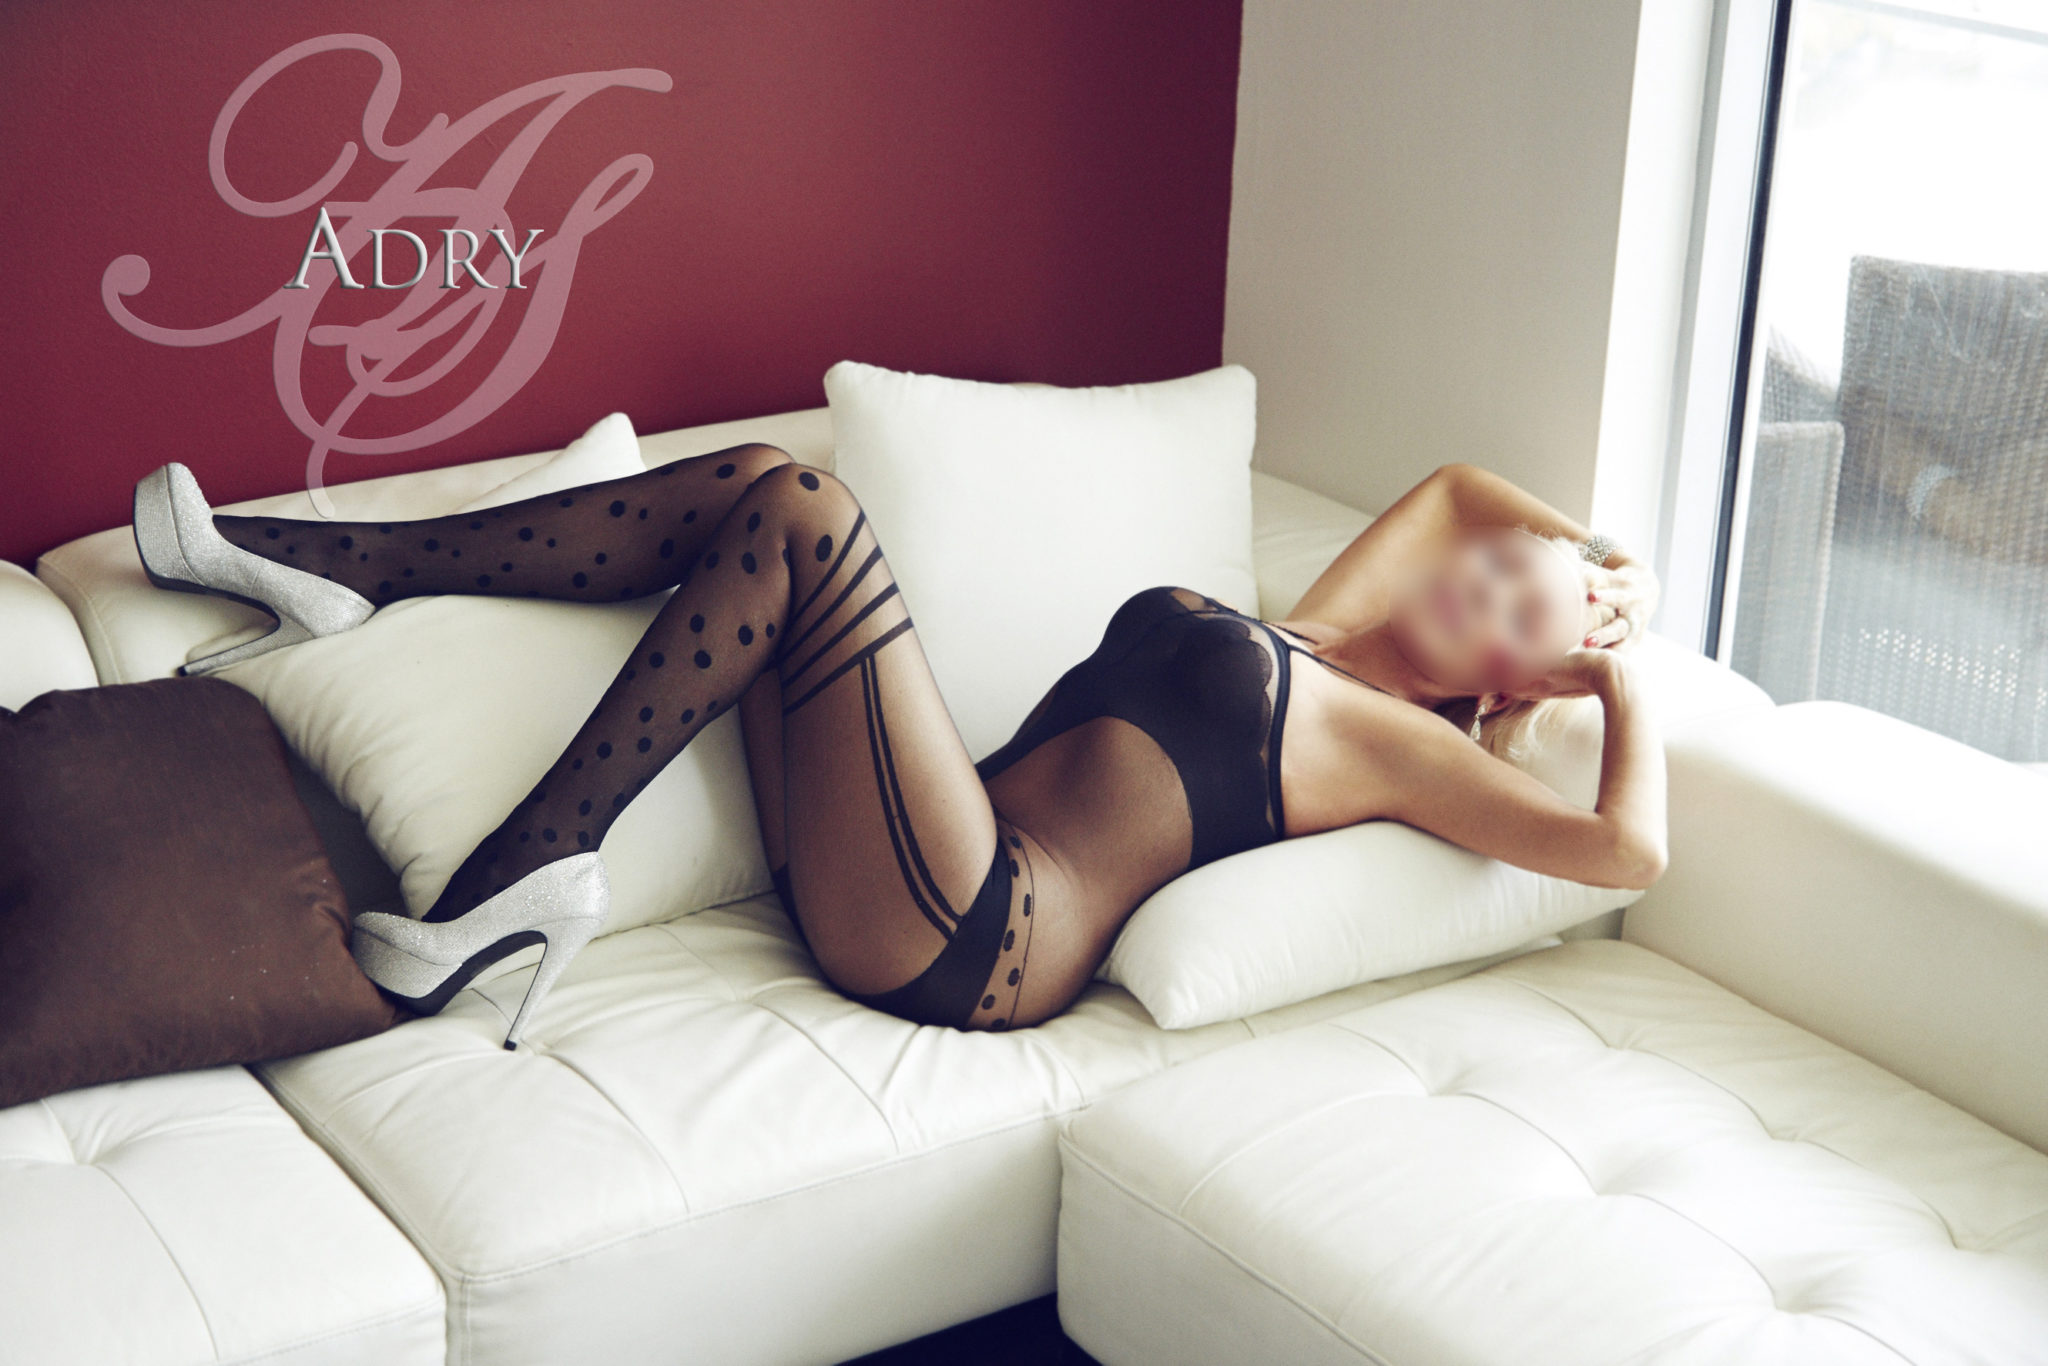 Mature Miami Escort - Miami escort blonde